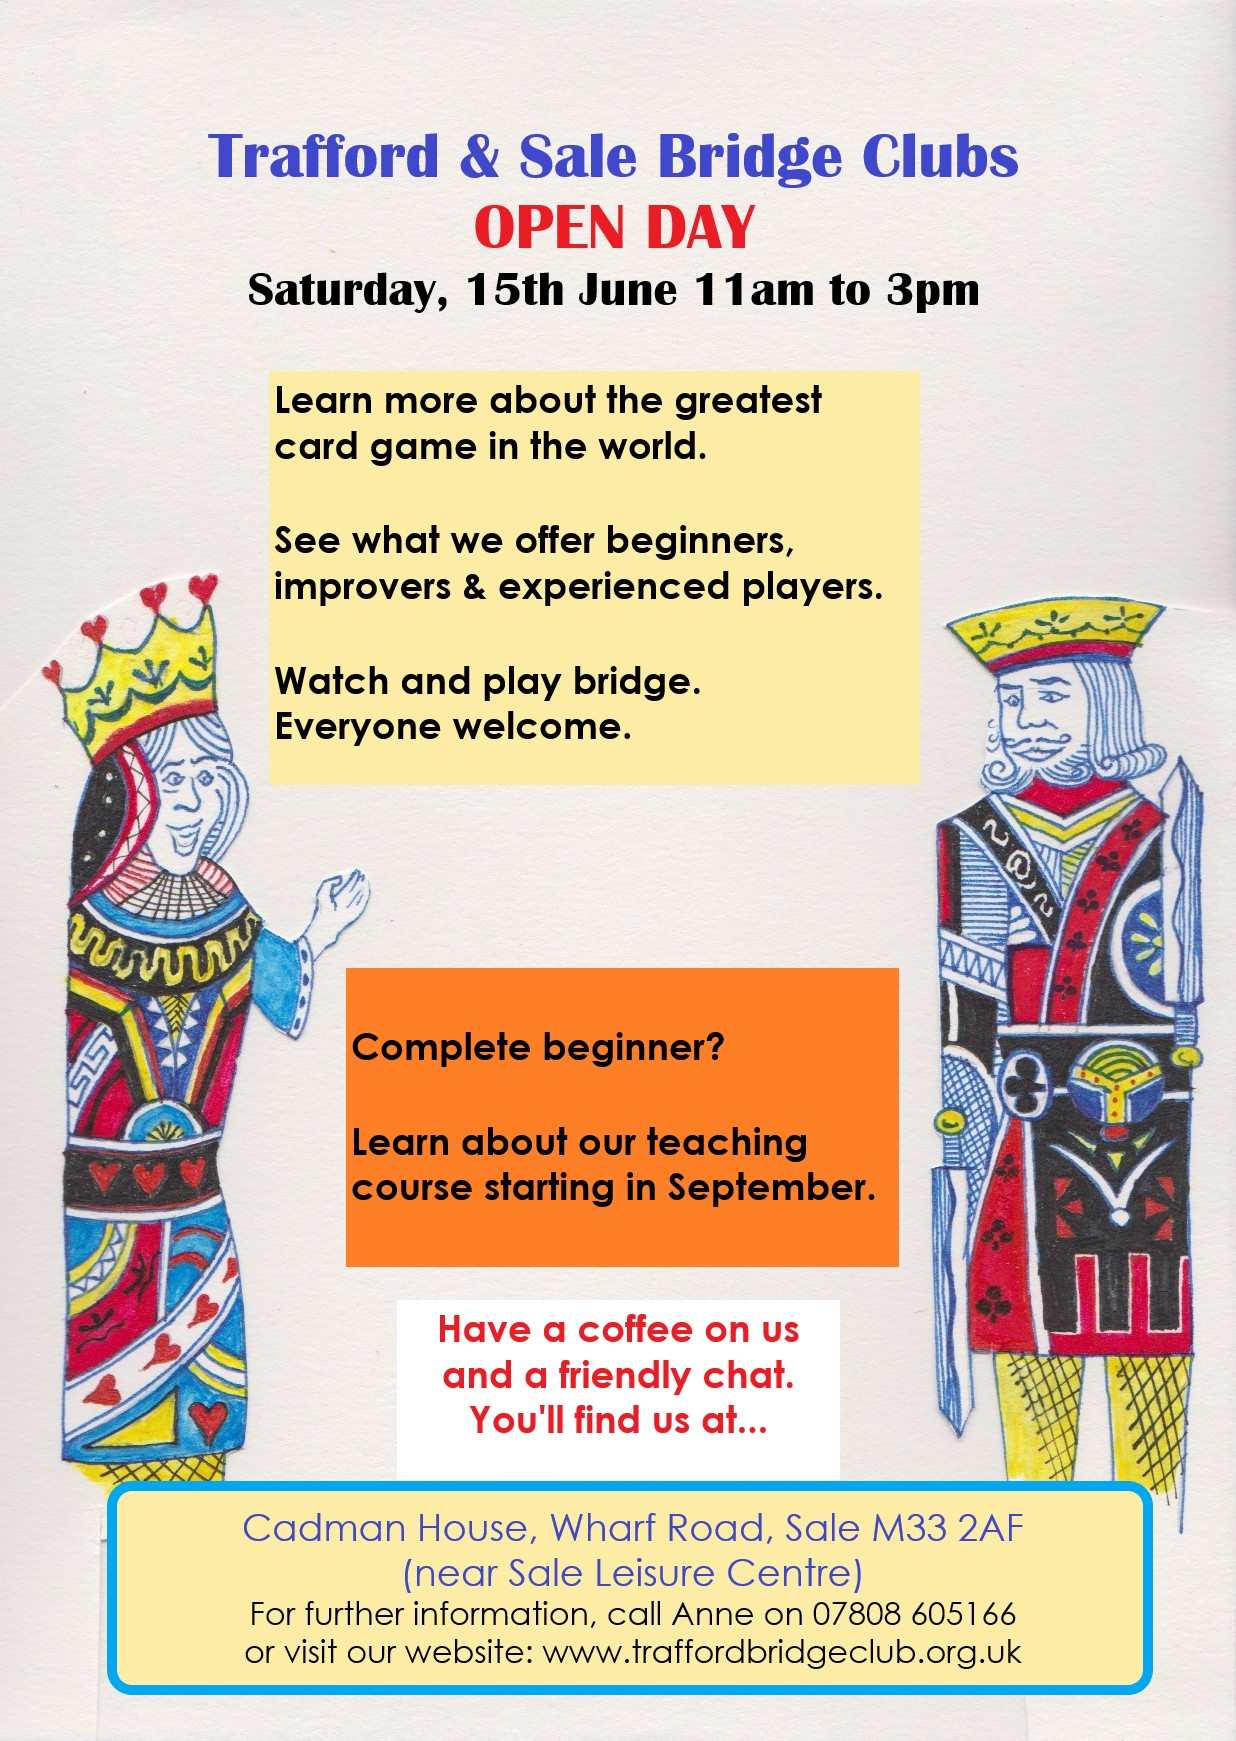 Trafford and Sale Bridge Club Open Day